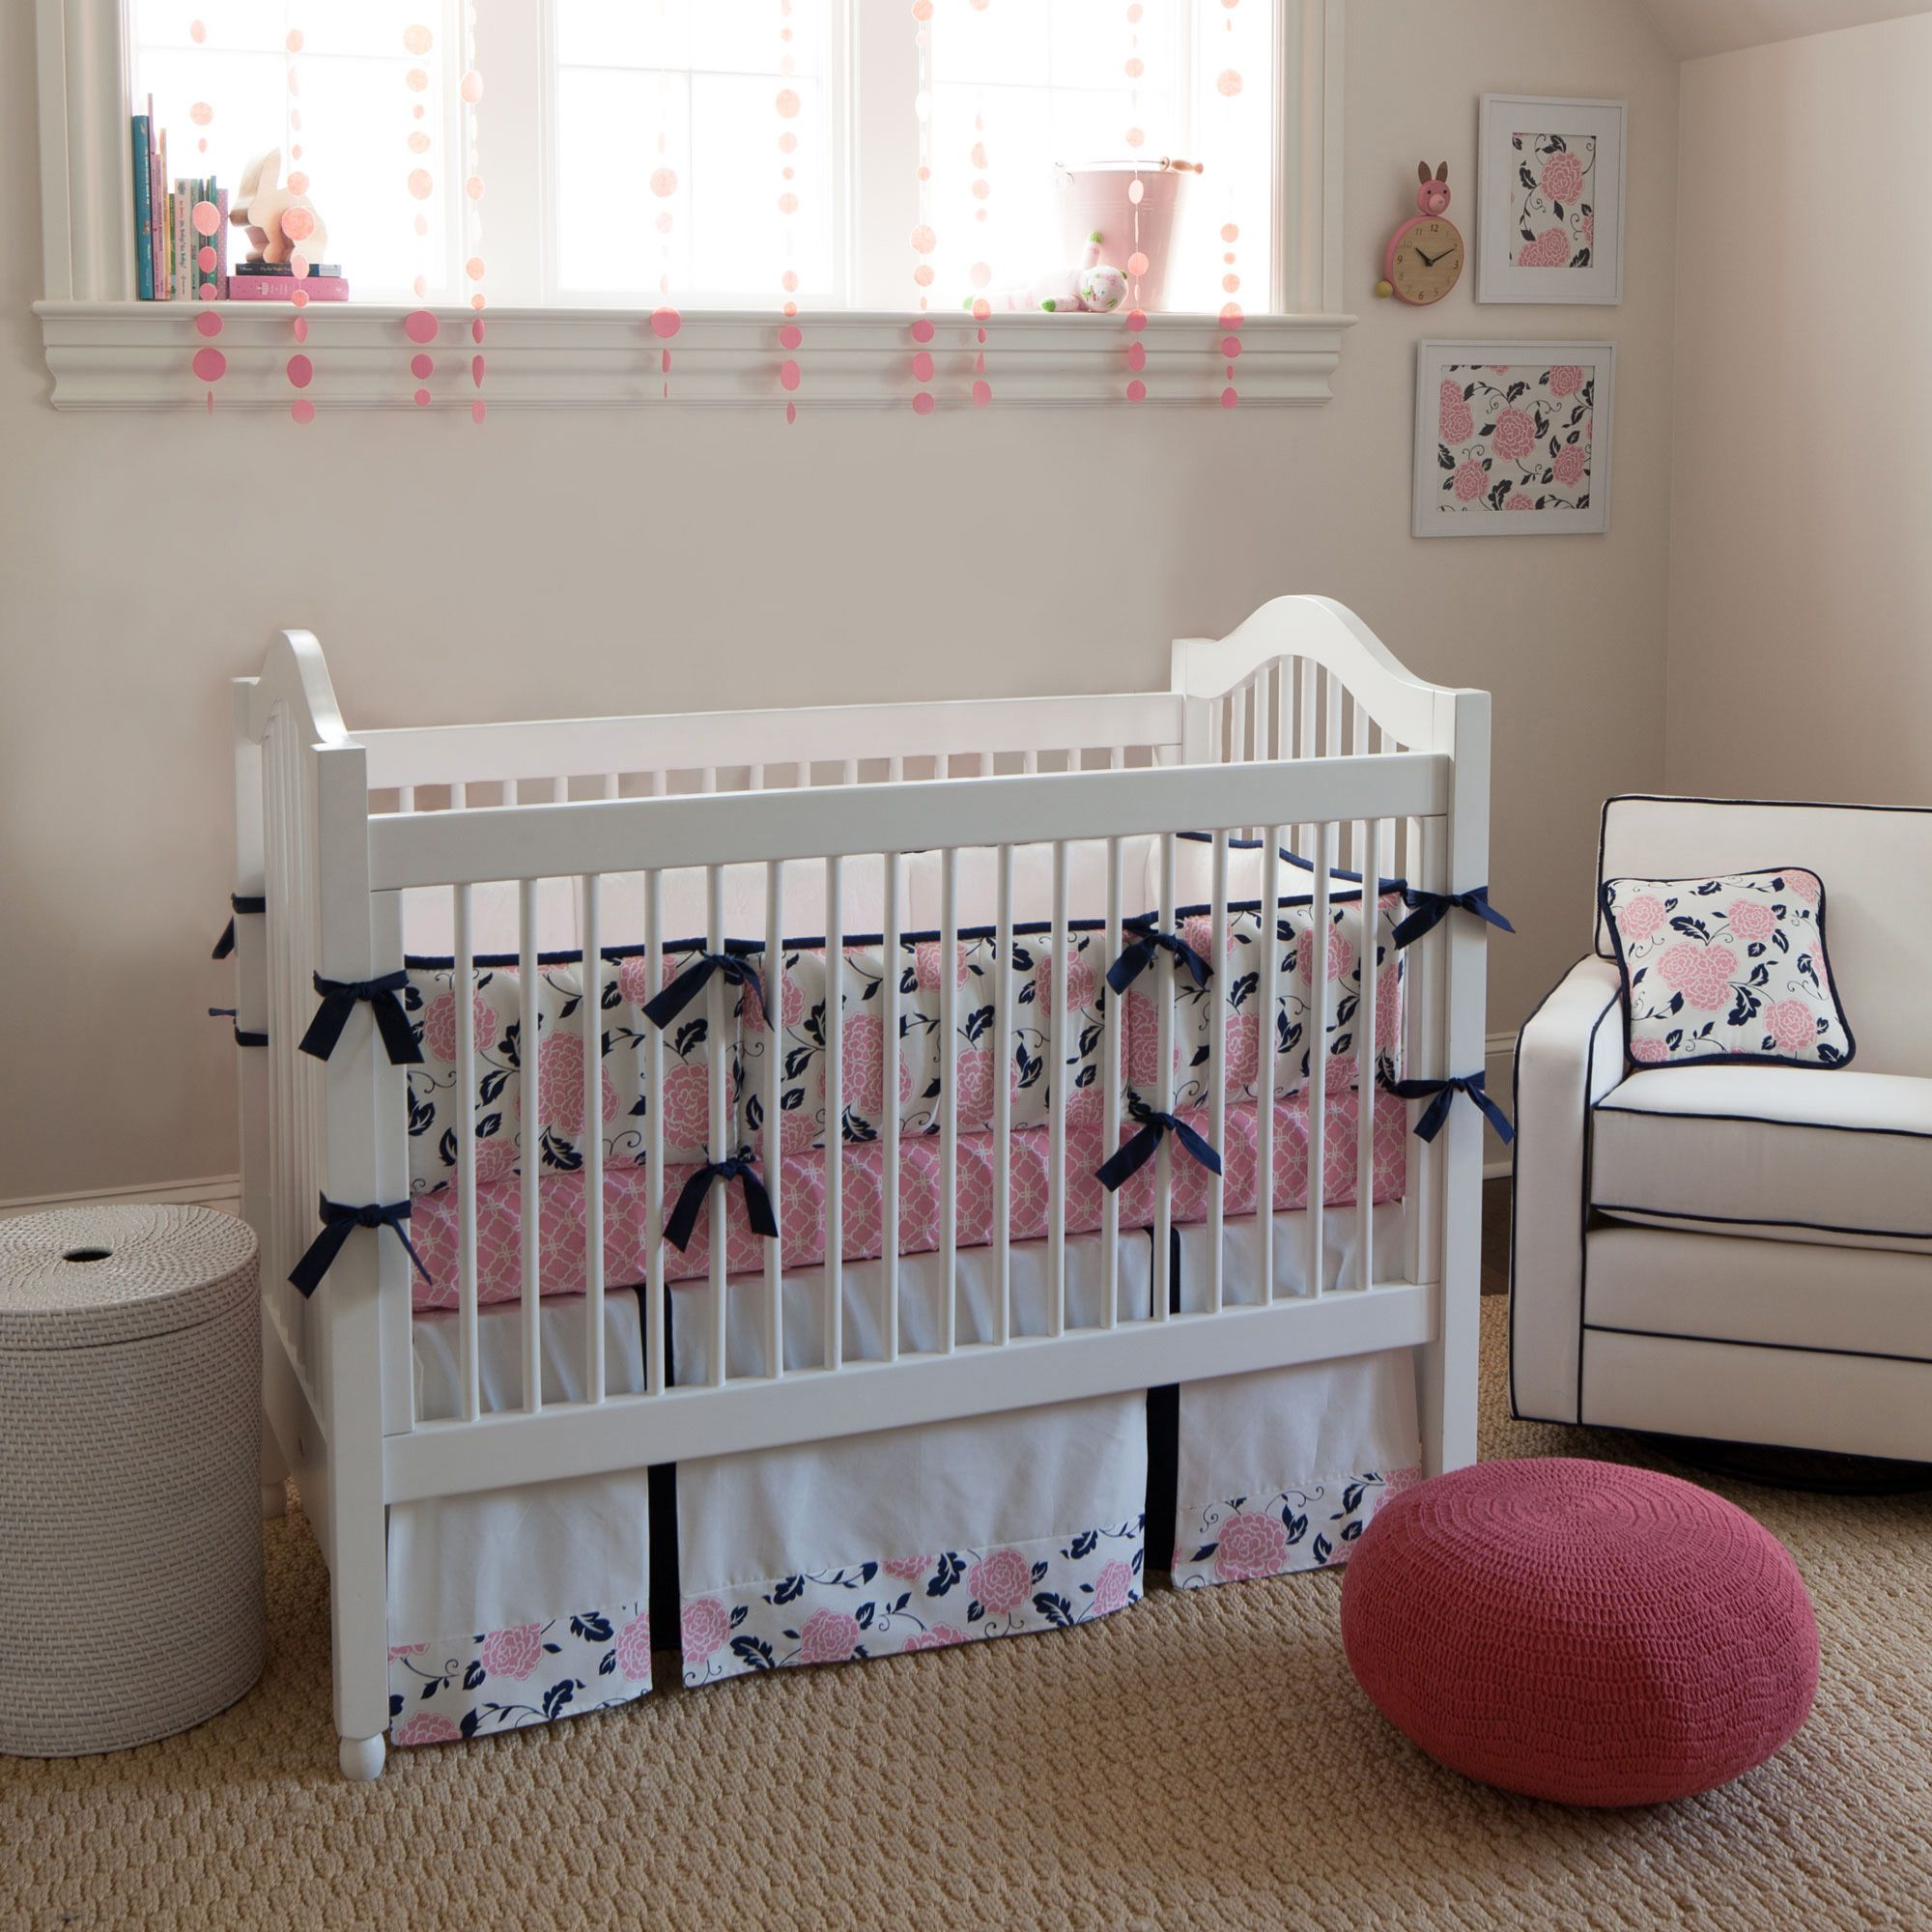 Coral and Navy Floral Baby Crib Bedding carouseldesigns